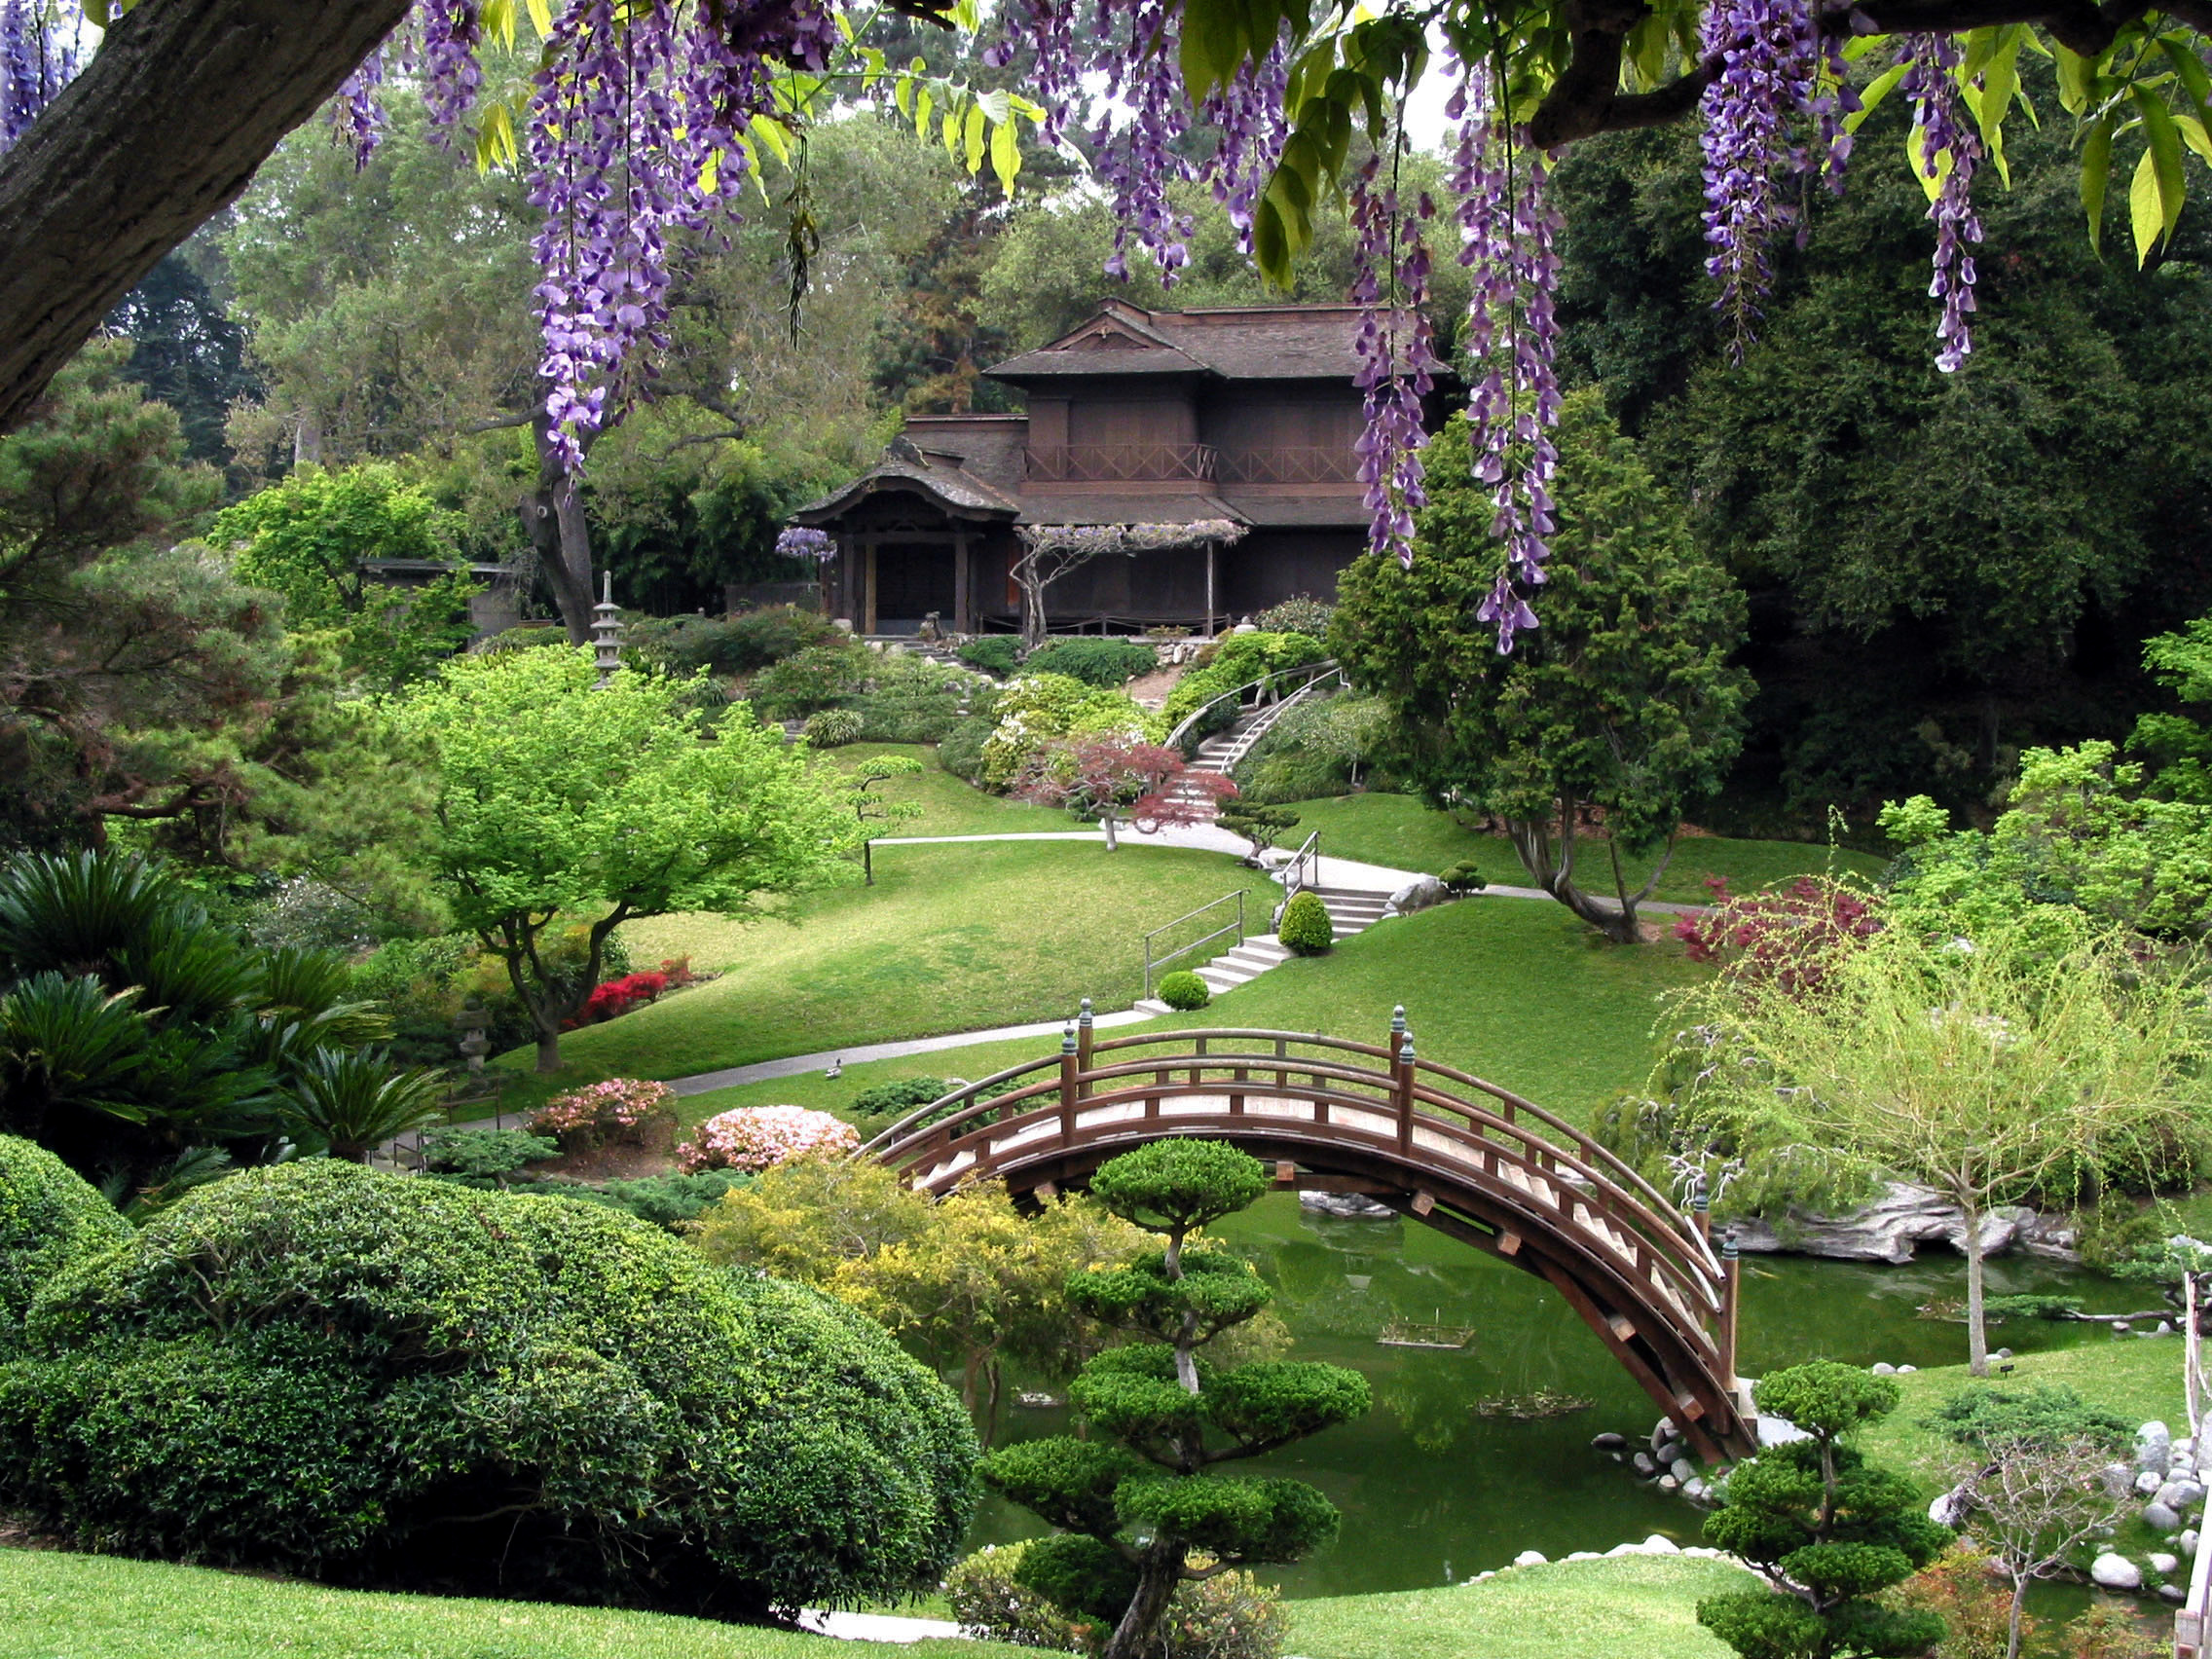 ... Library, Art Collections, and Botanical Gardens - The Japanese Garden